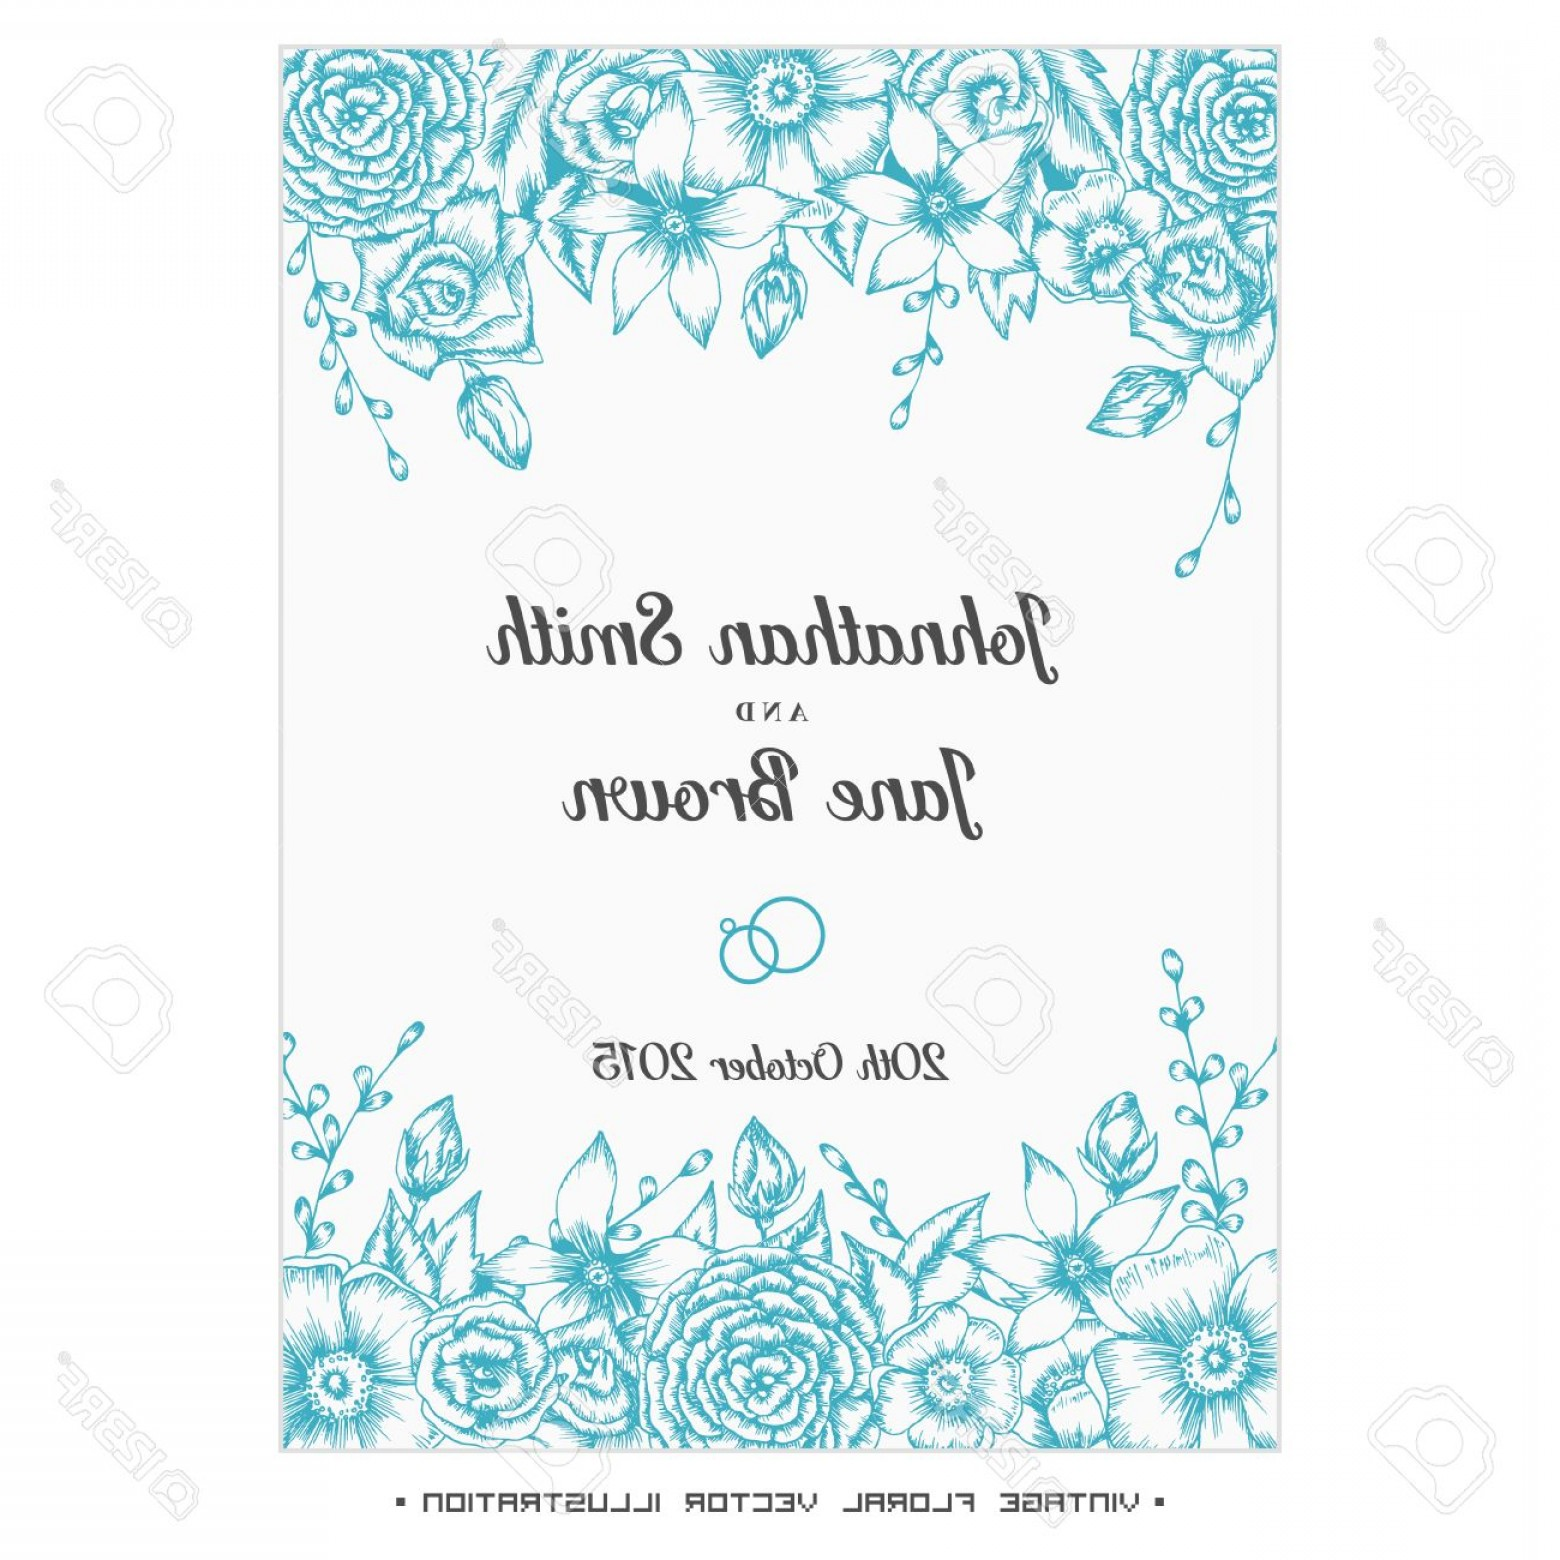 Turquoise Flower Vector: Photostock Vector Vector Vintage Floral Wedding Invitation Hand Drawn Flower Border